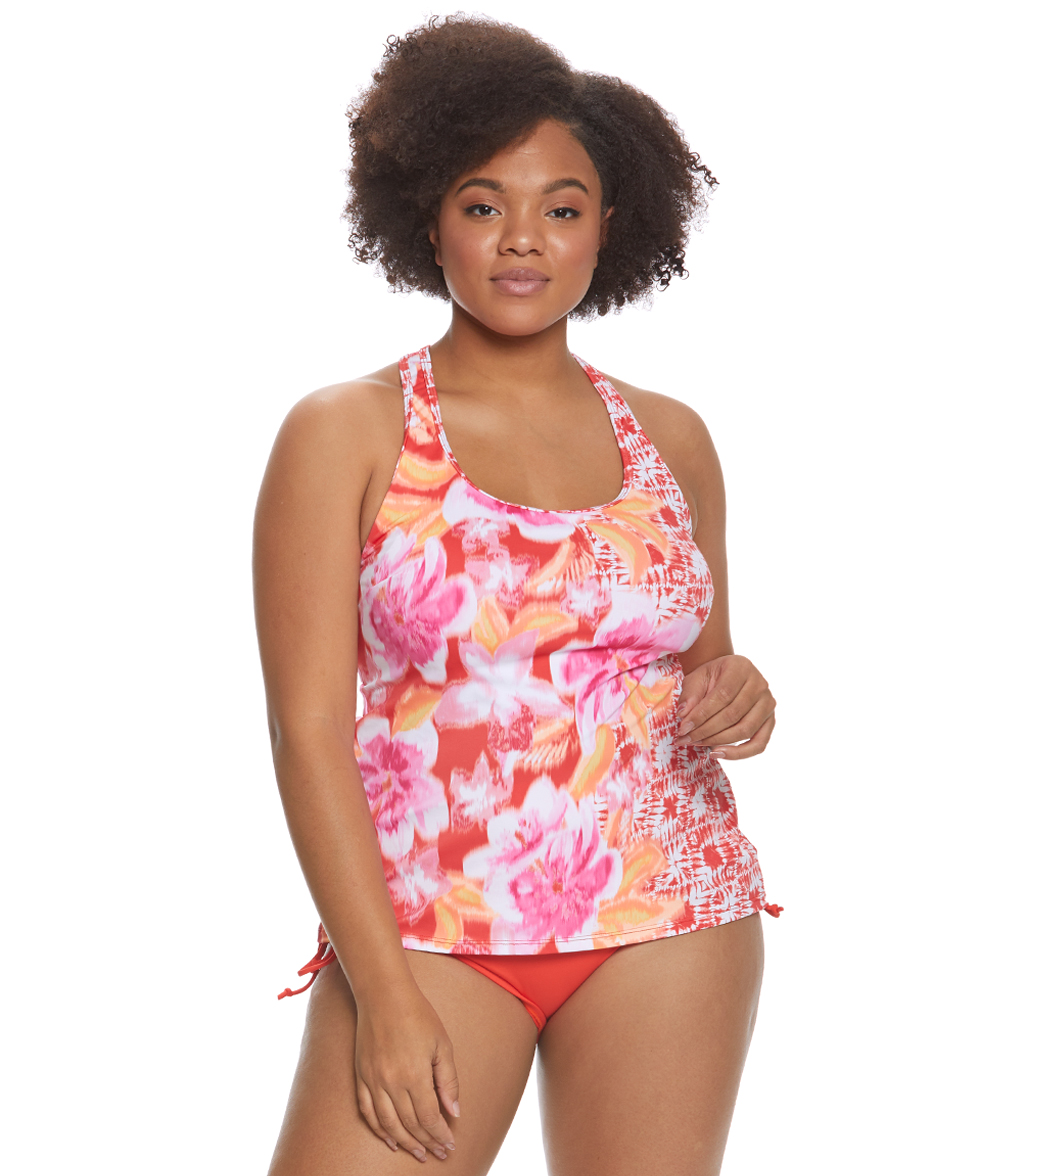 956701f7a4582 Beach House Plus Size Bungalow Bay Border Evelyn Tankini Top at  SwimOutlet.com - Free Shipping